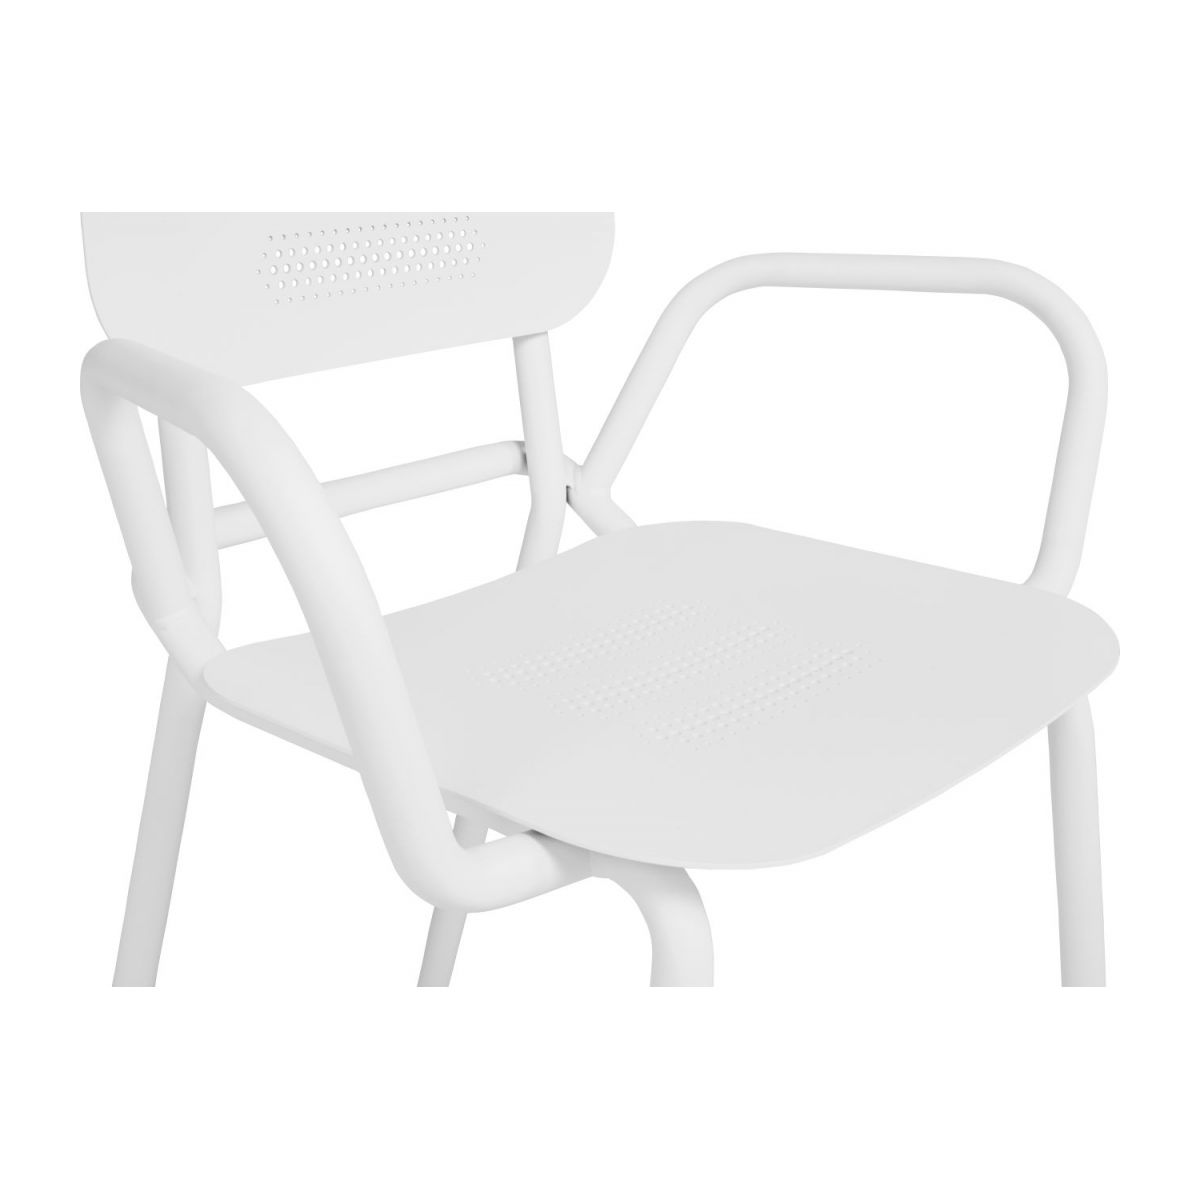 Garden chair with armrests n°7